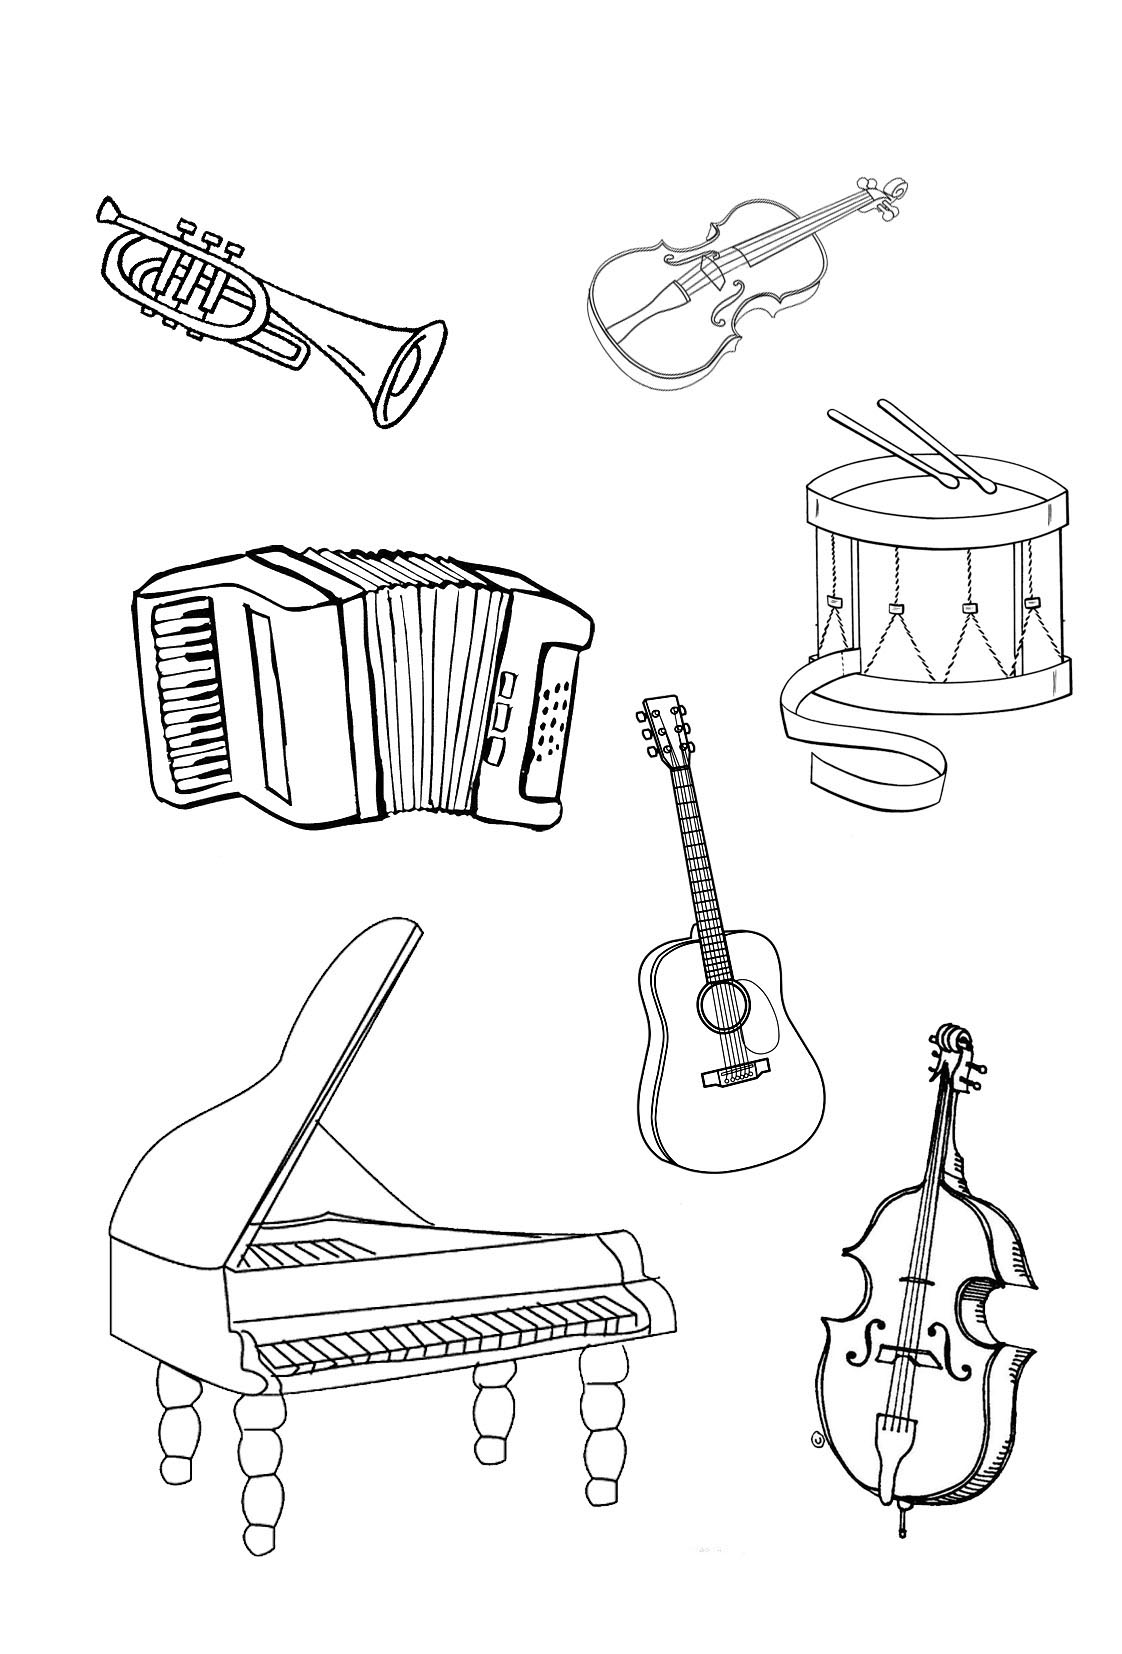 percussion instruments coloring pages - photo#5